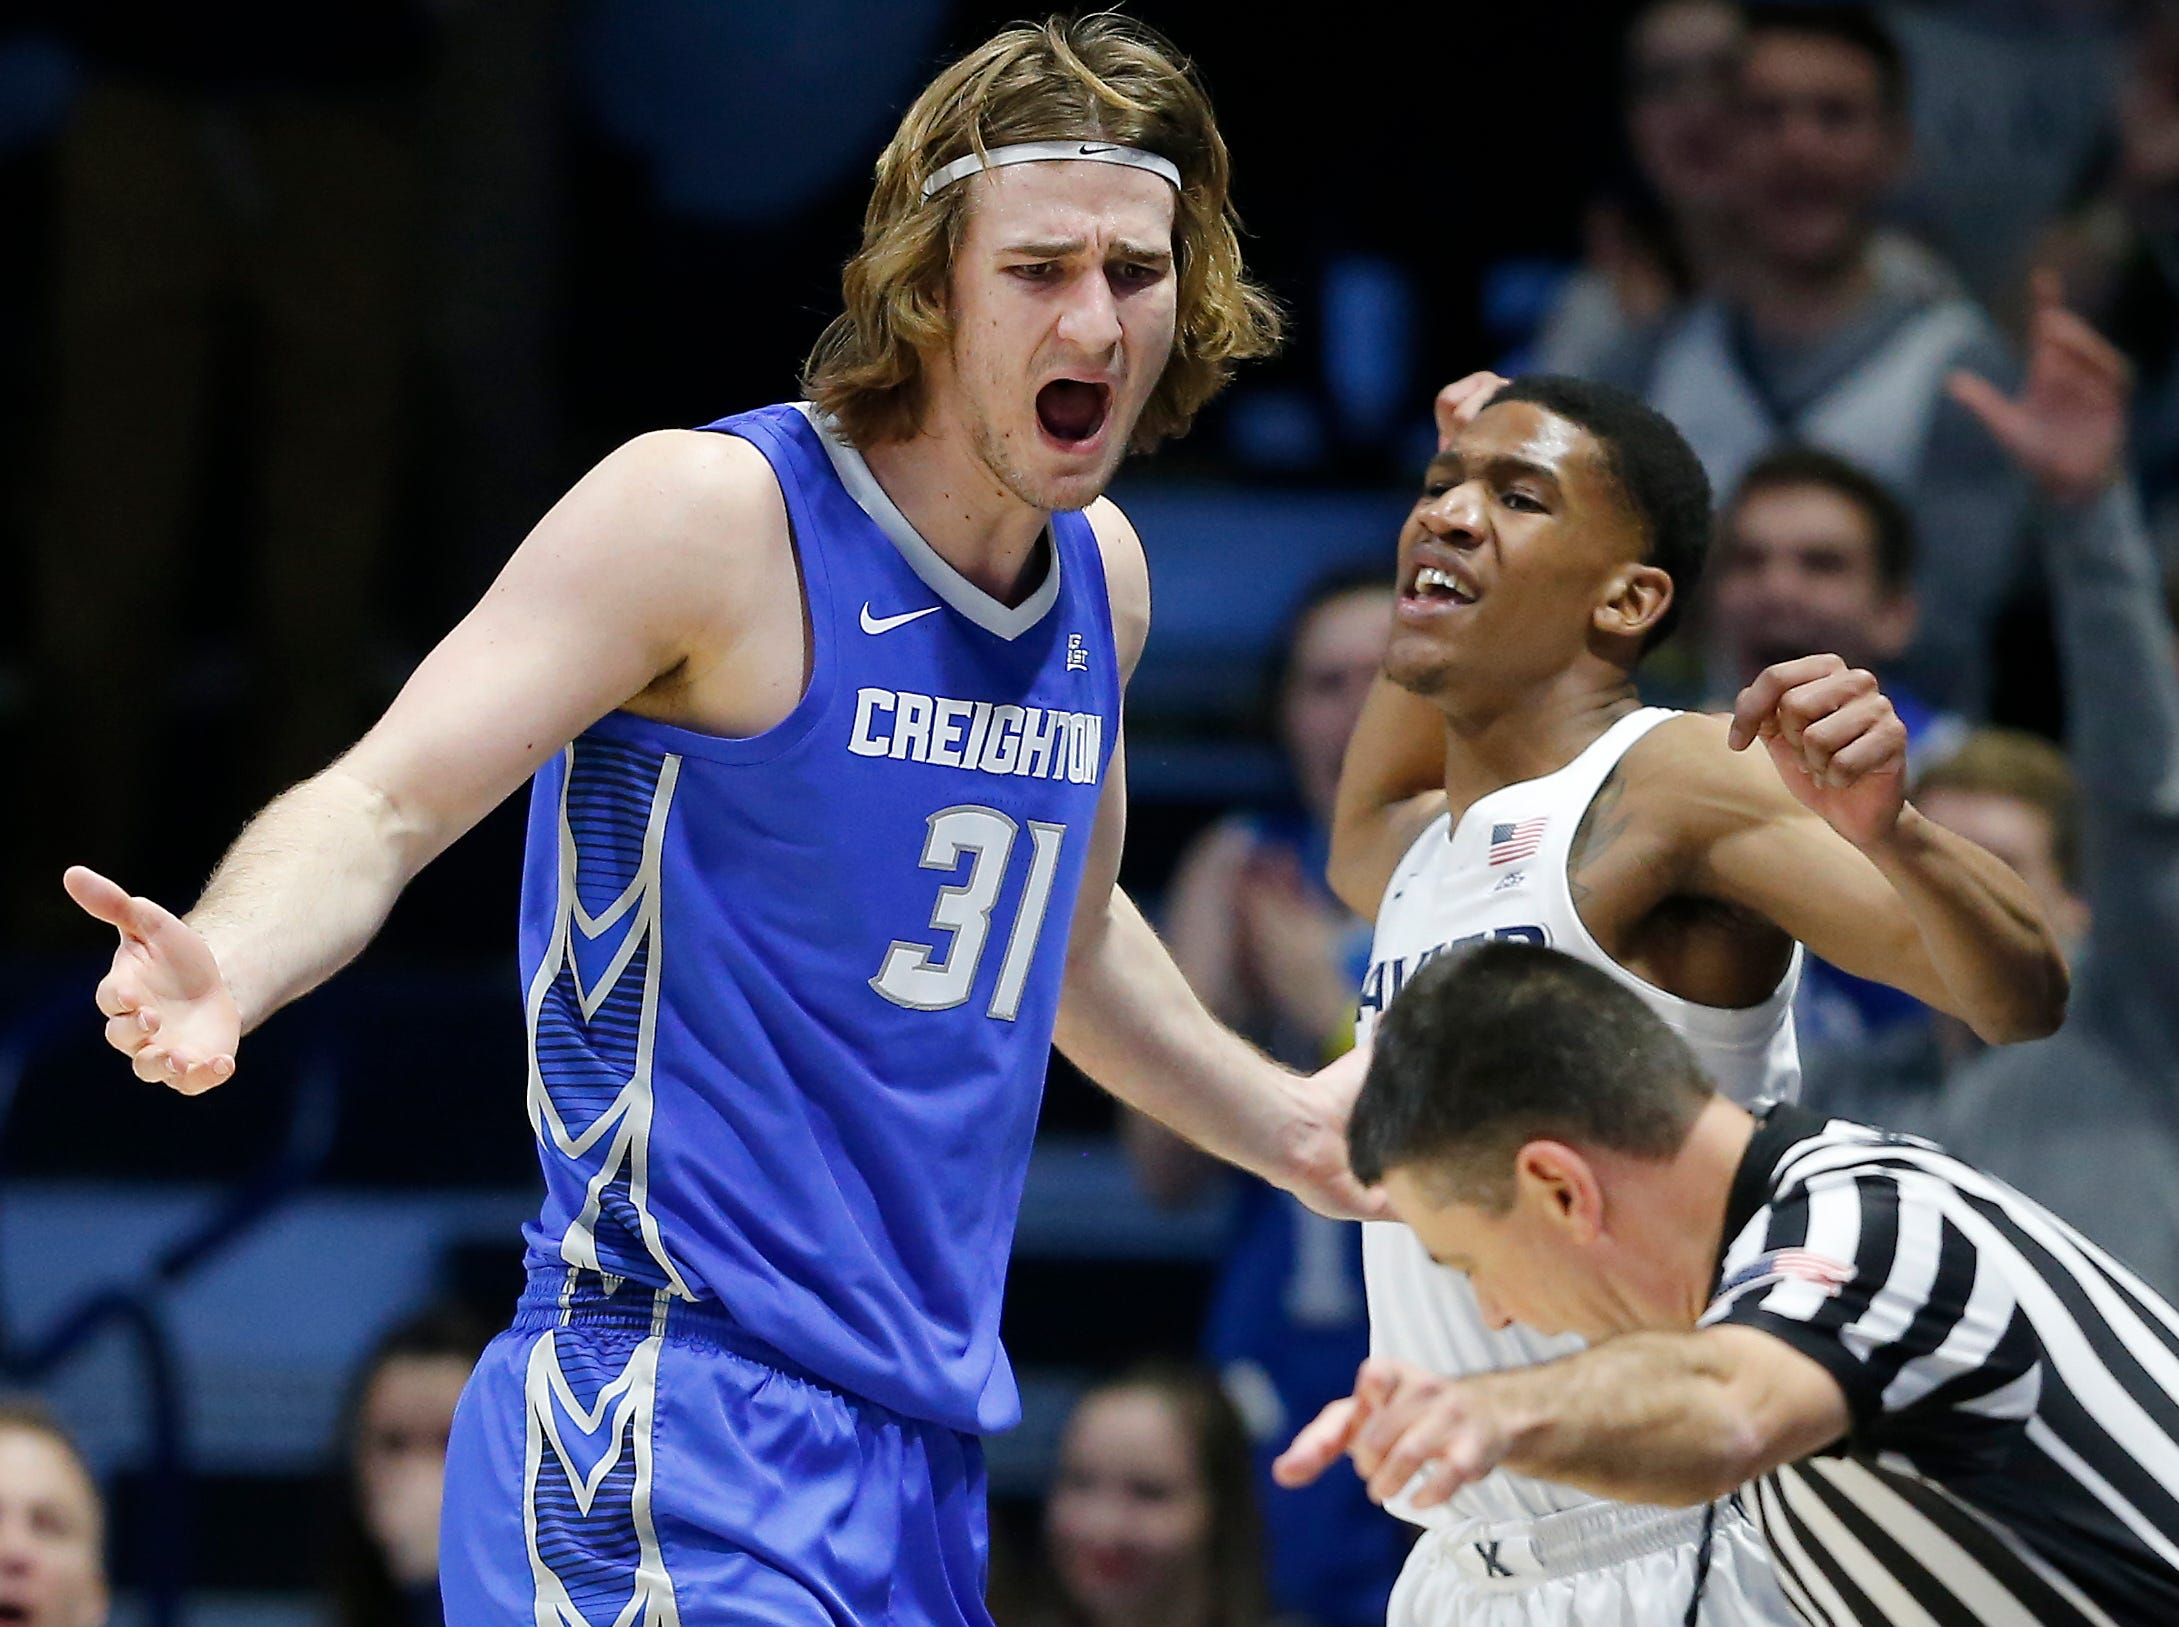 Creighton Bluejays center Samson Froling (31) reacts after an out of bounds ball is turned over to Xavier in the second half of the NCAA Big East Conference basketball game between the Xavier Musketeers and the Creighton Bluejays at Xavier's Cintas Center in Cincinnati on Thursday, Feb. 14, 2019. Xavier broke a 6-game losing streak with a 64-61 overtime win over Creighton.